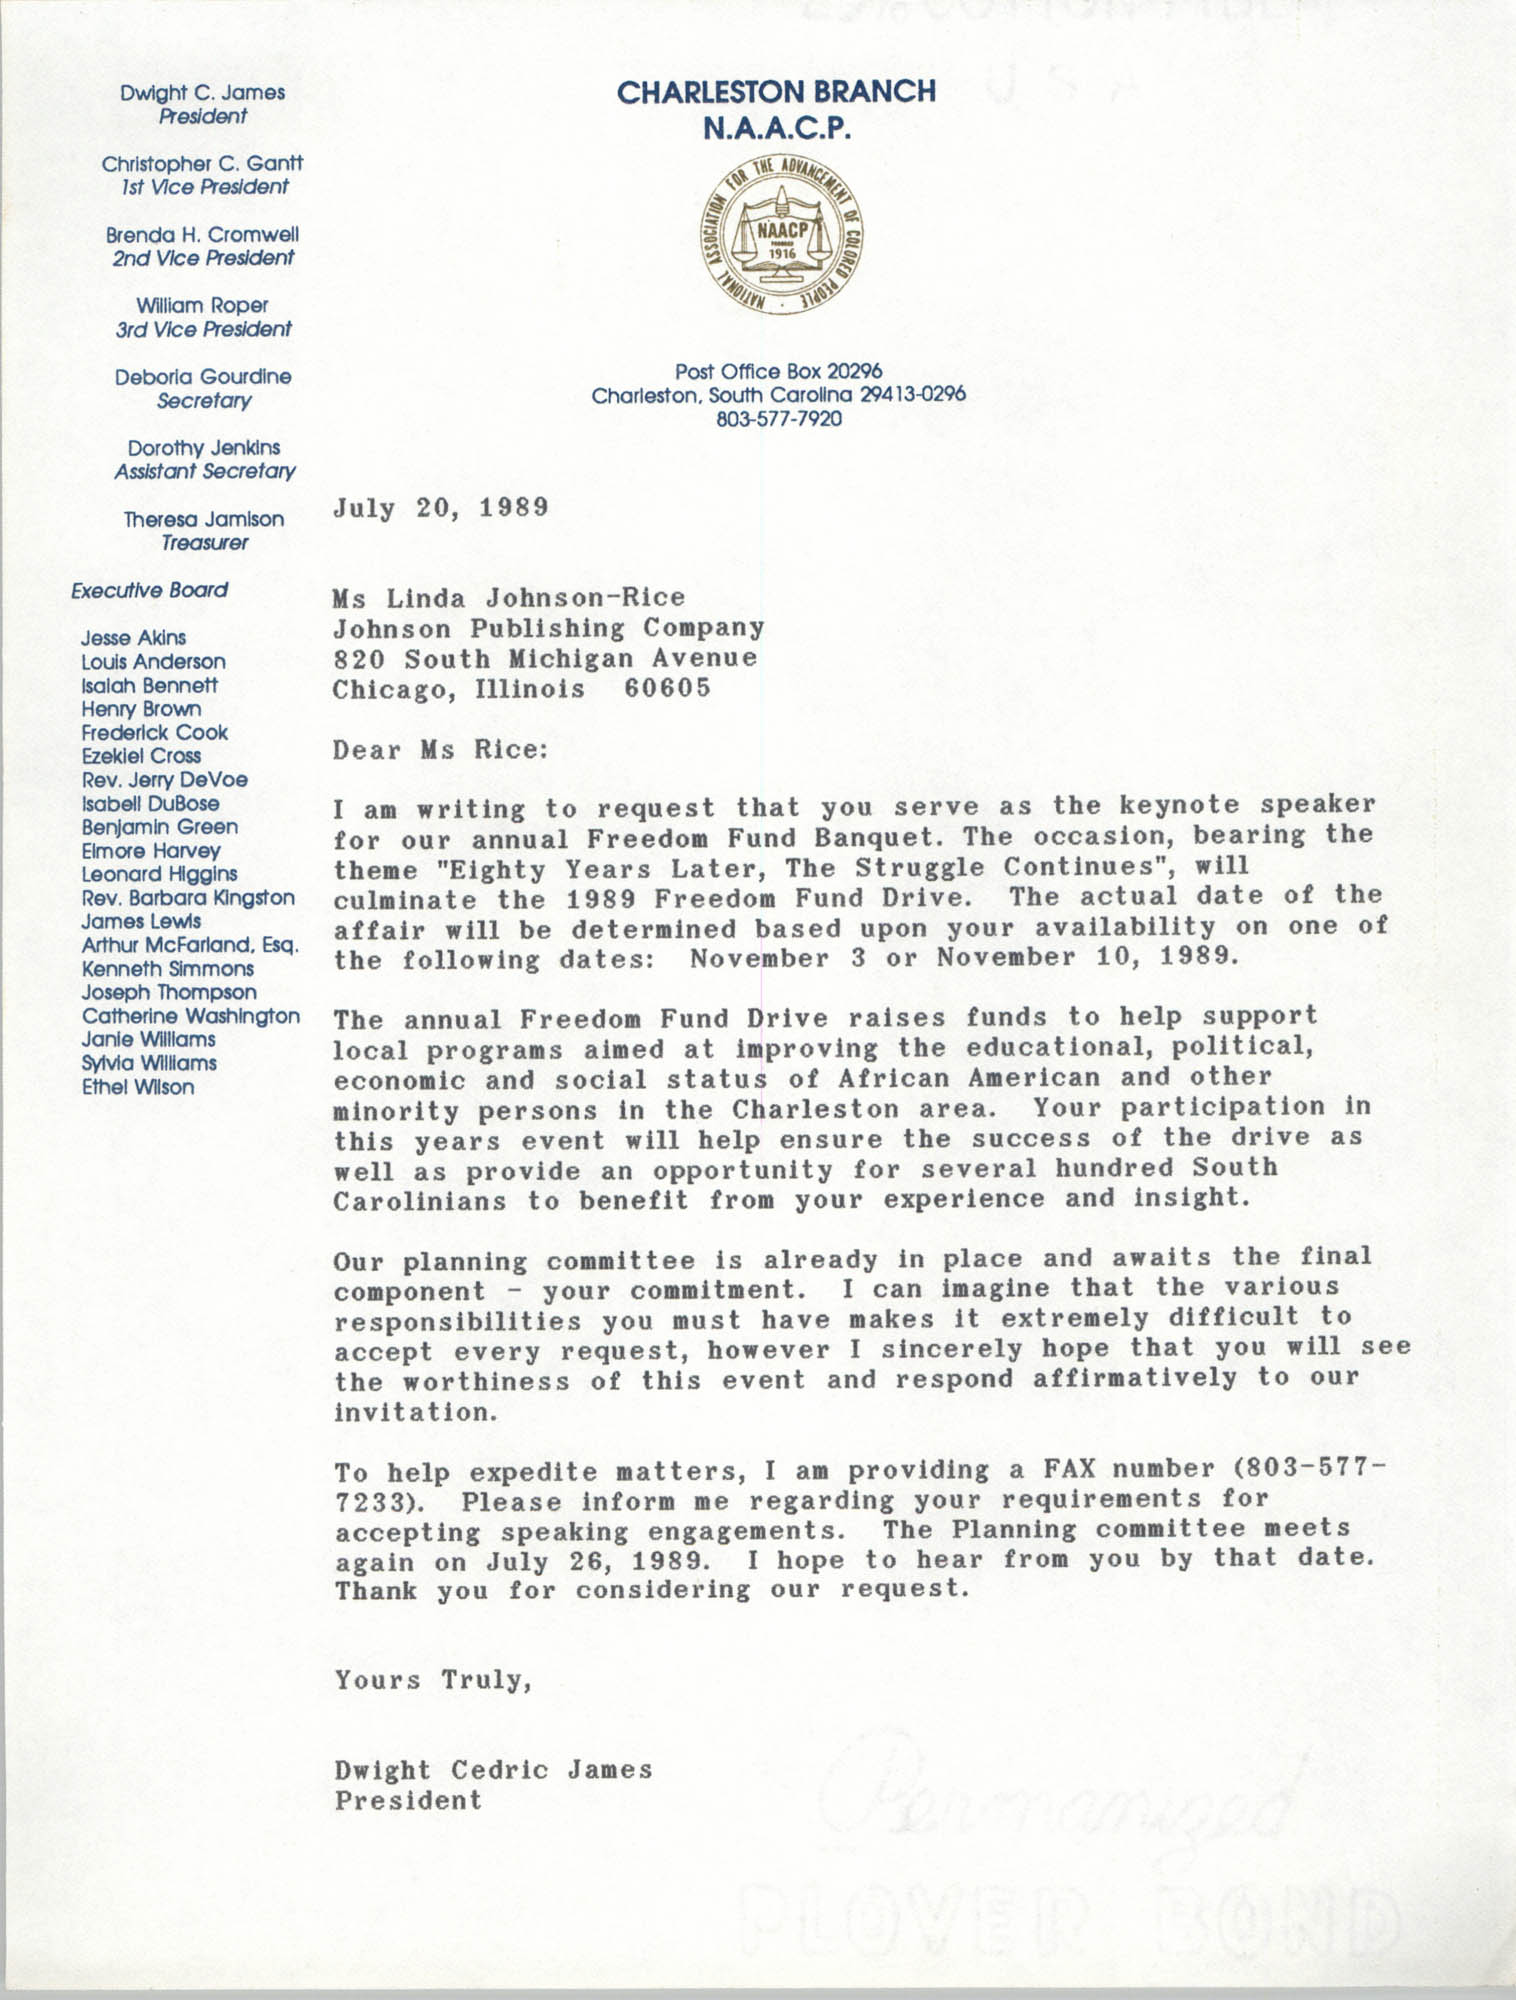 Letter from Dwight C. James to Linda Johnson-Rice, July 20, 1989